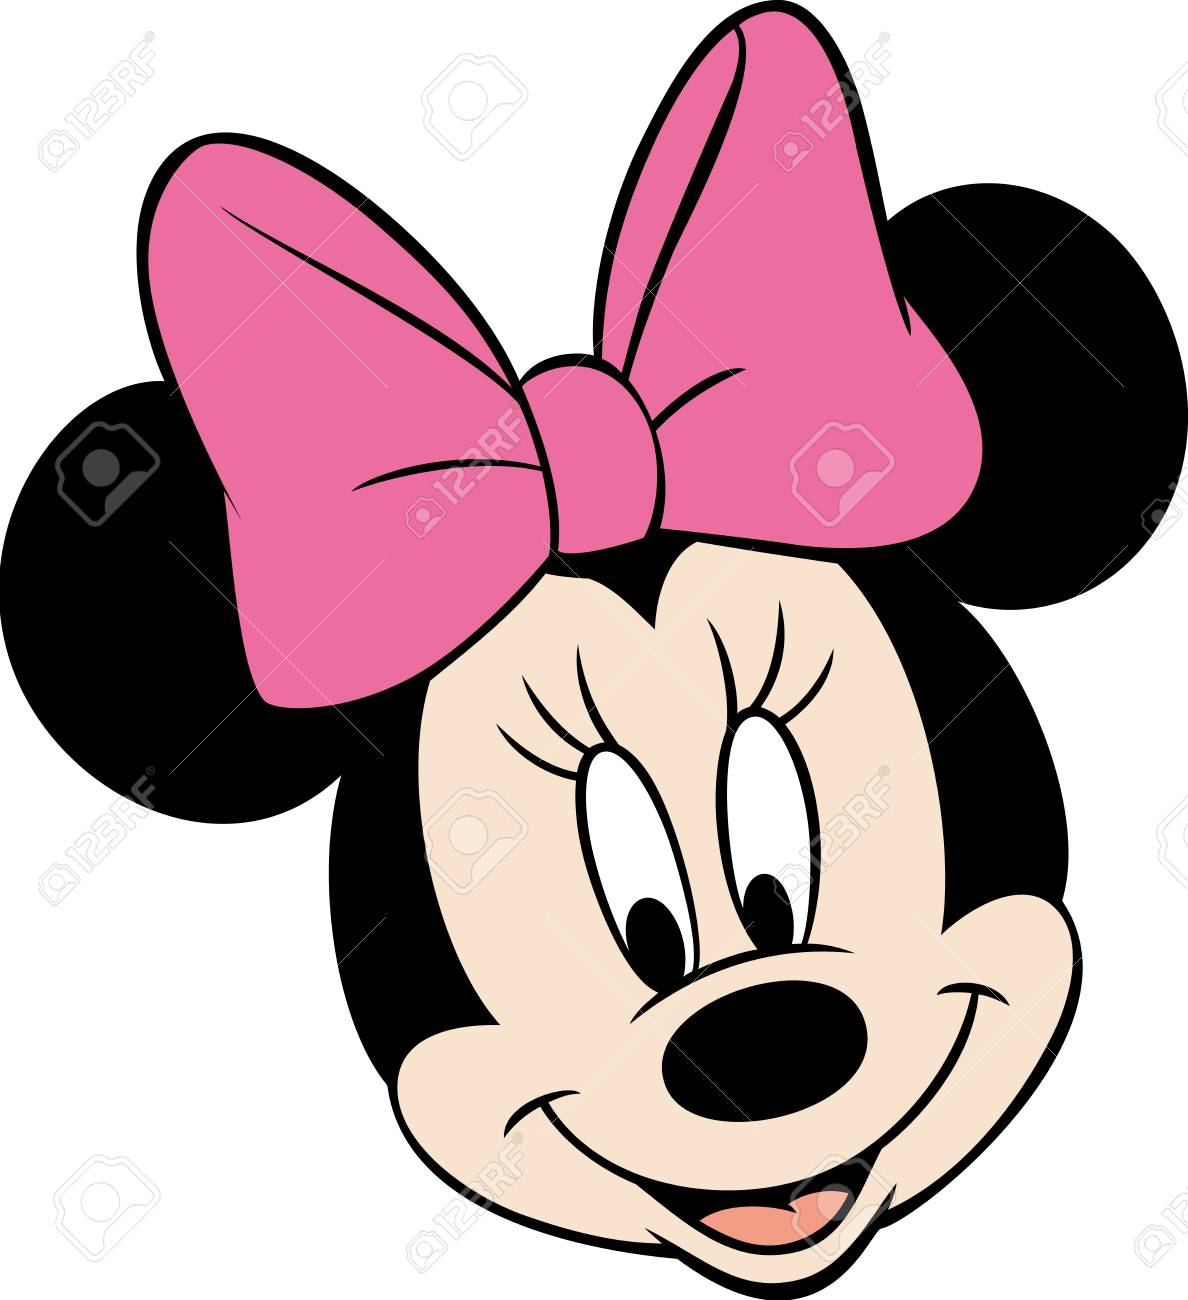 minnie mouse head pink happy smile cartoon illustration stock photo